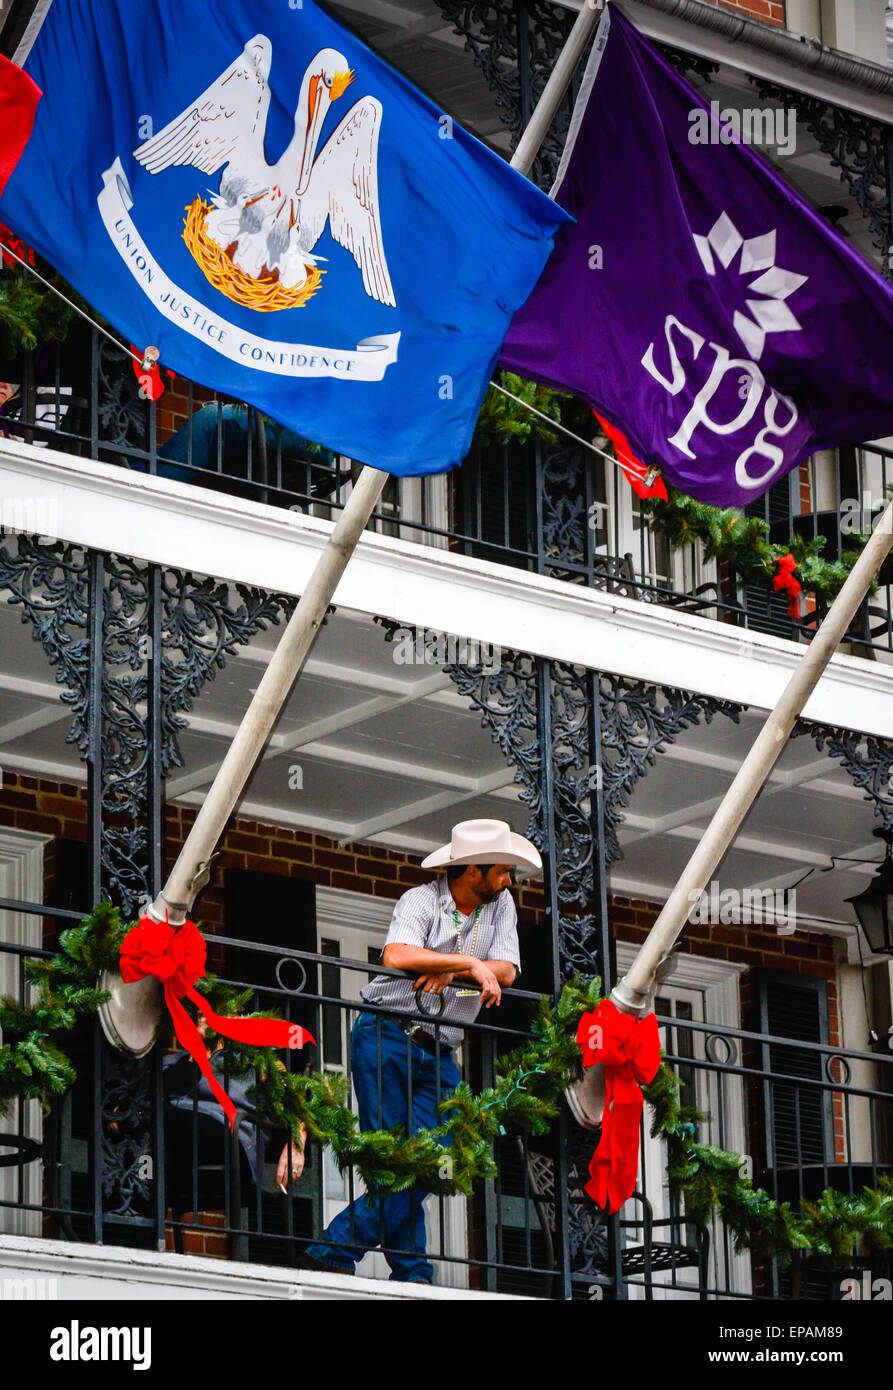 bourbon street hotels with balcony Man With Cowboy Hat And Jeans Looks Over Bourbon Street From